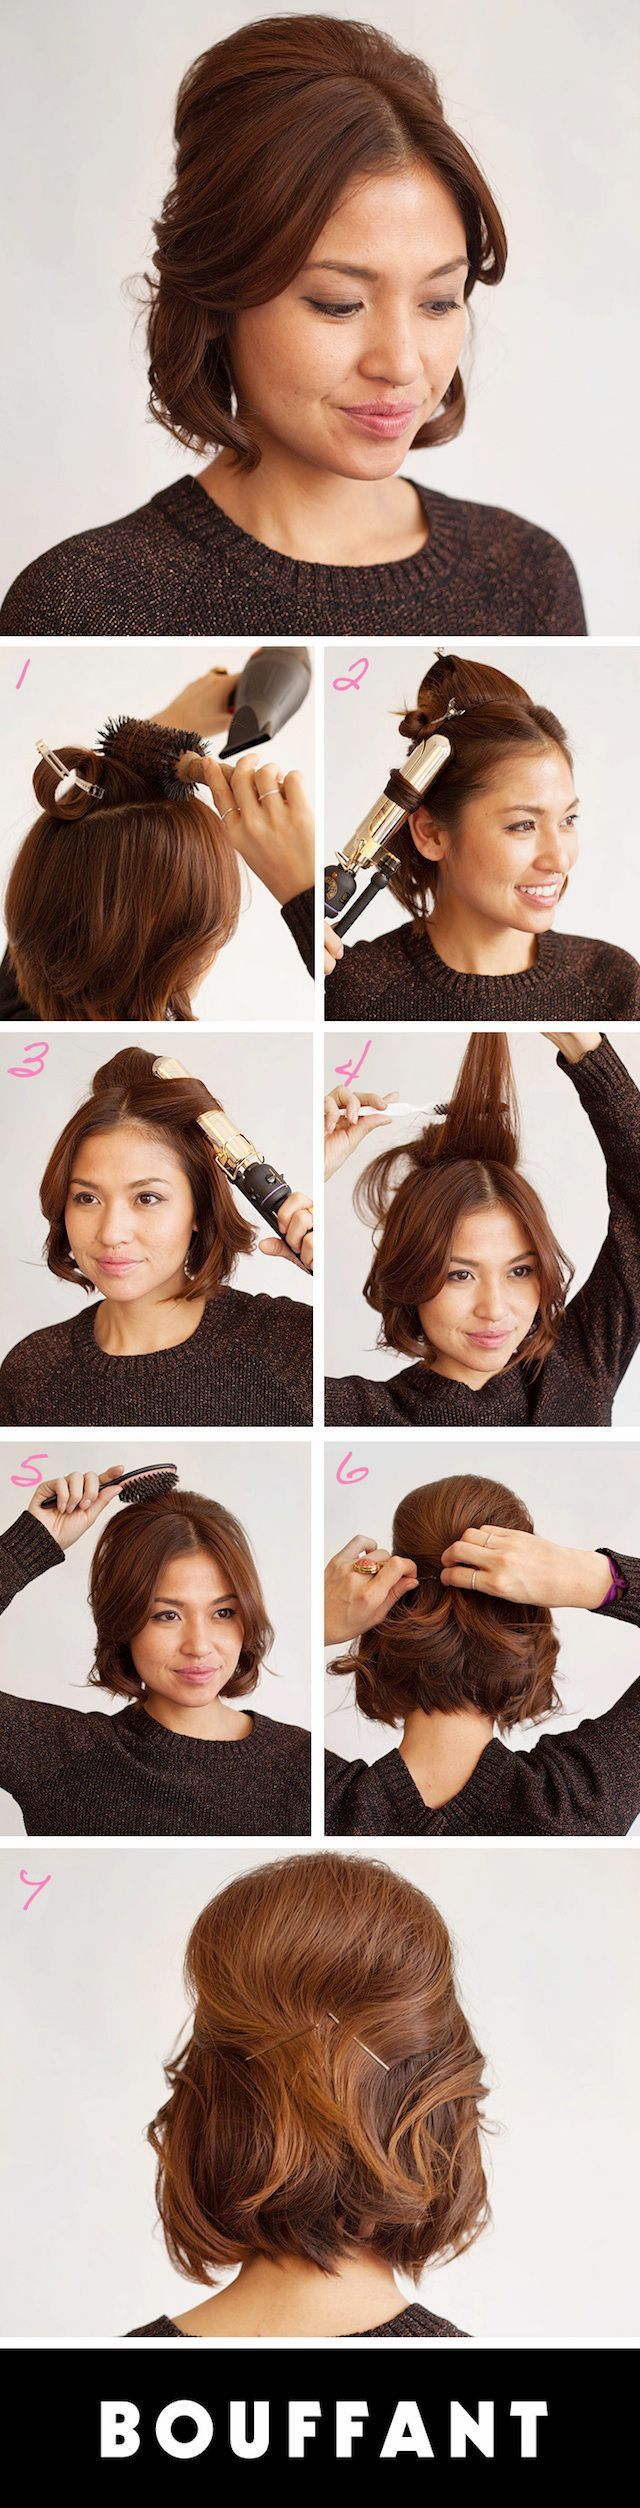 Best Hairstyle For Thin Hair And Round Face